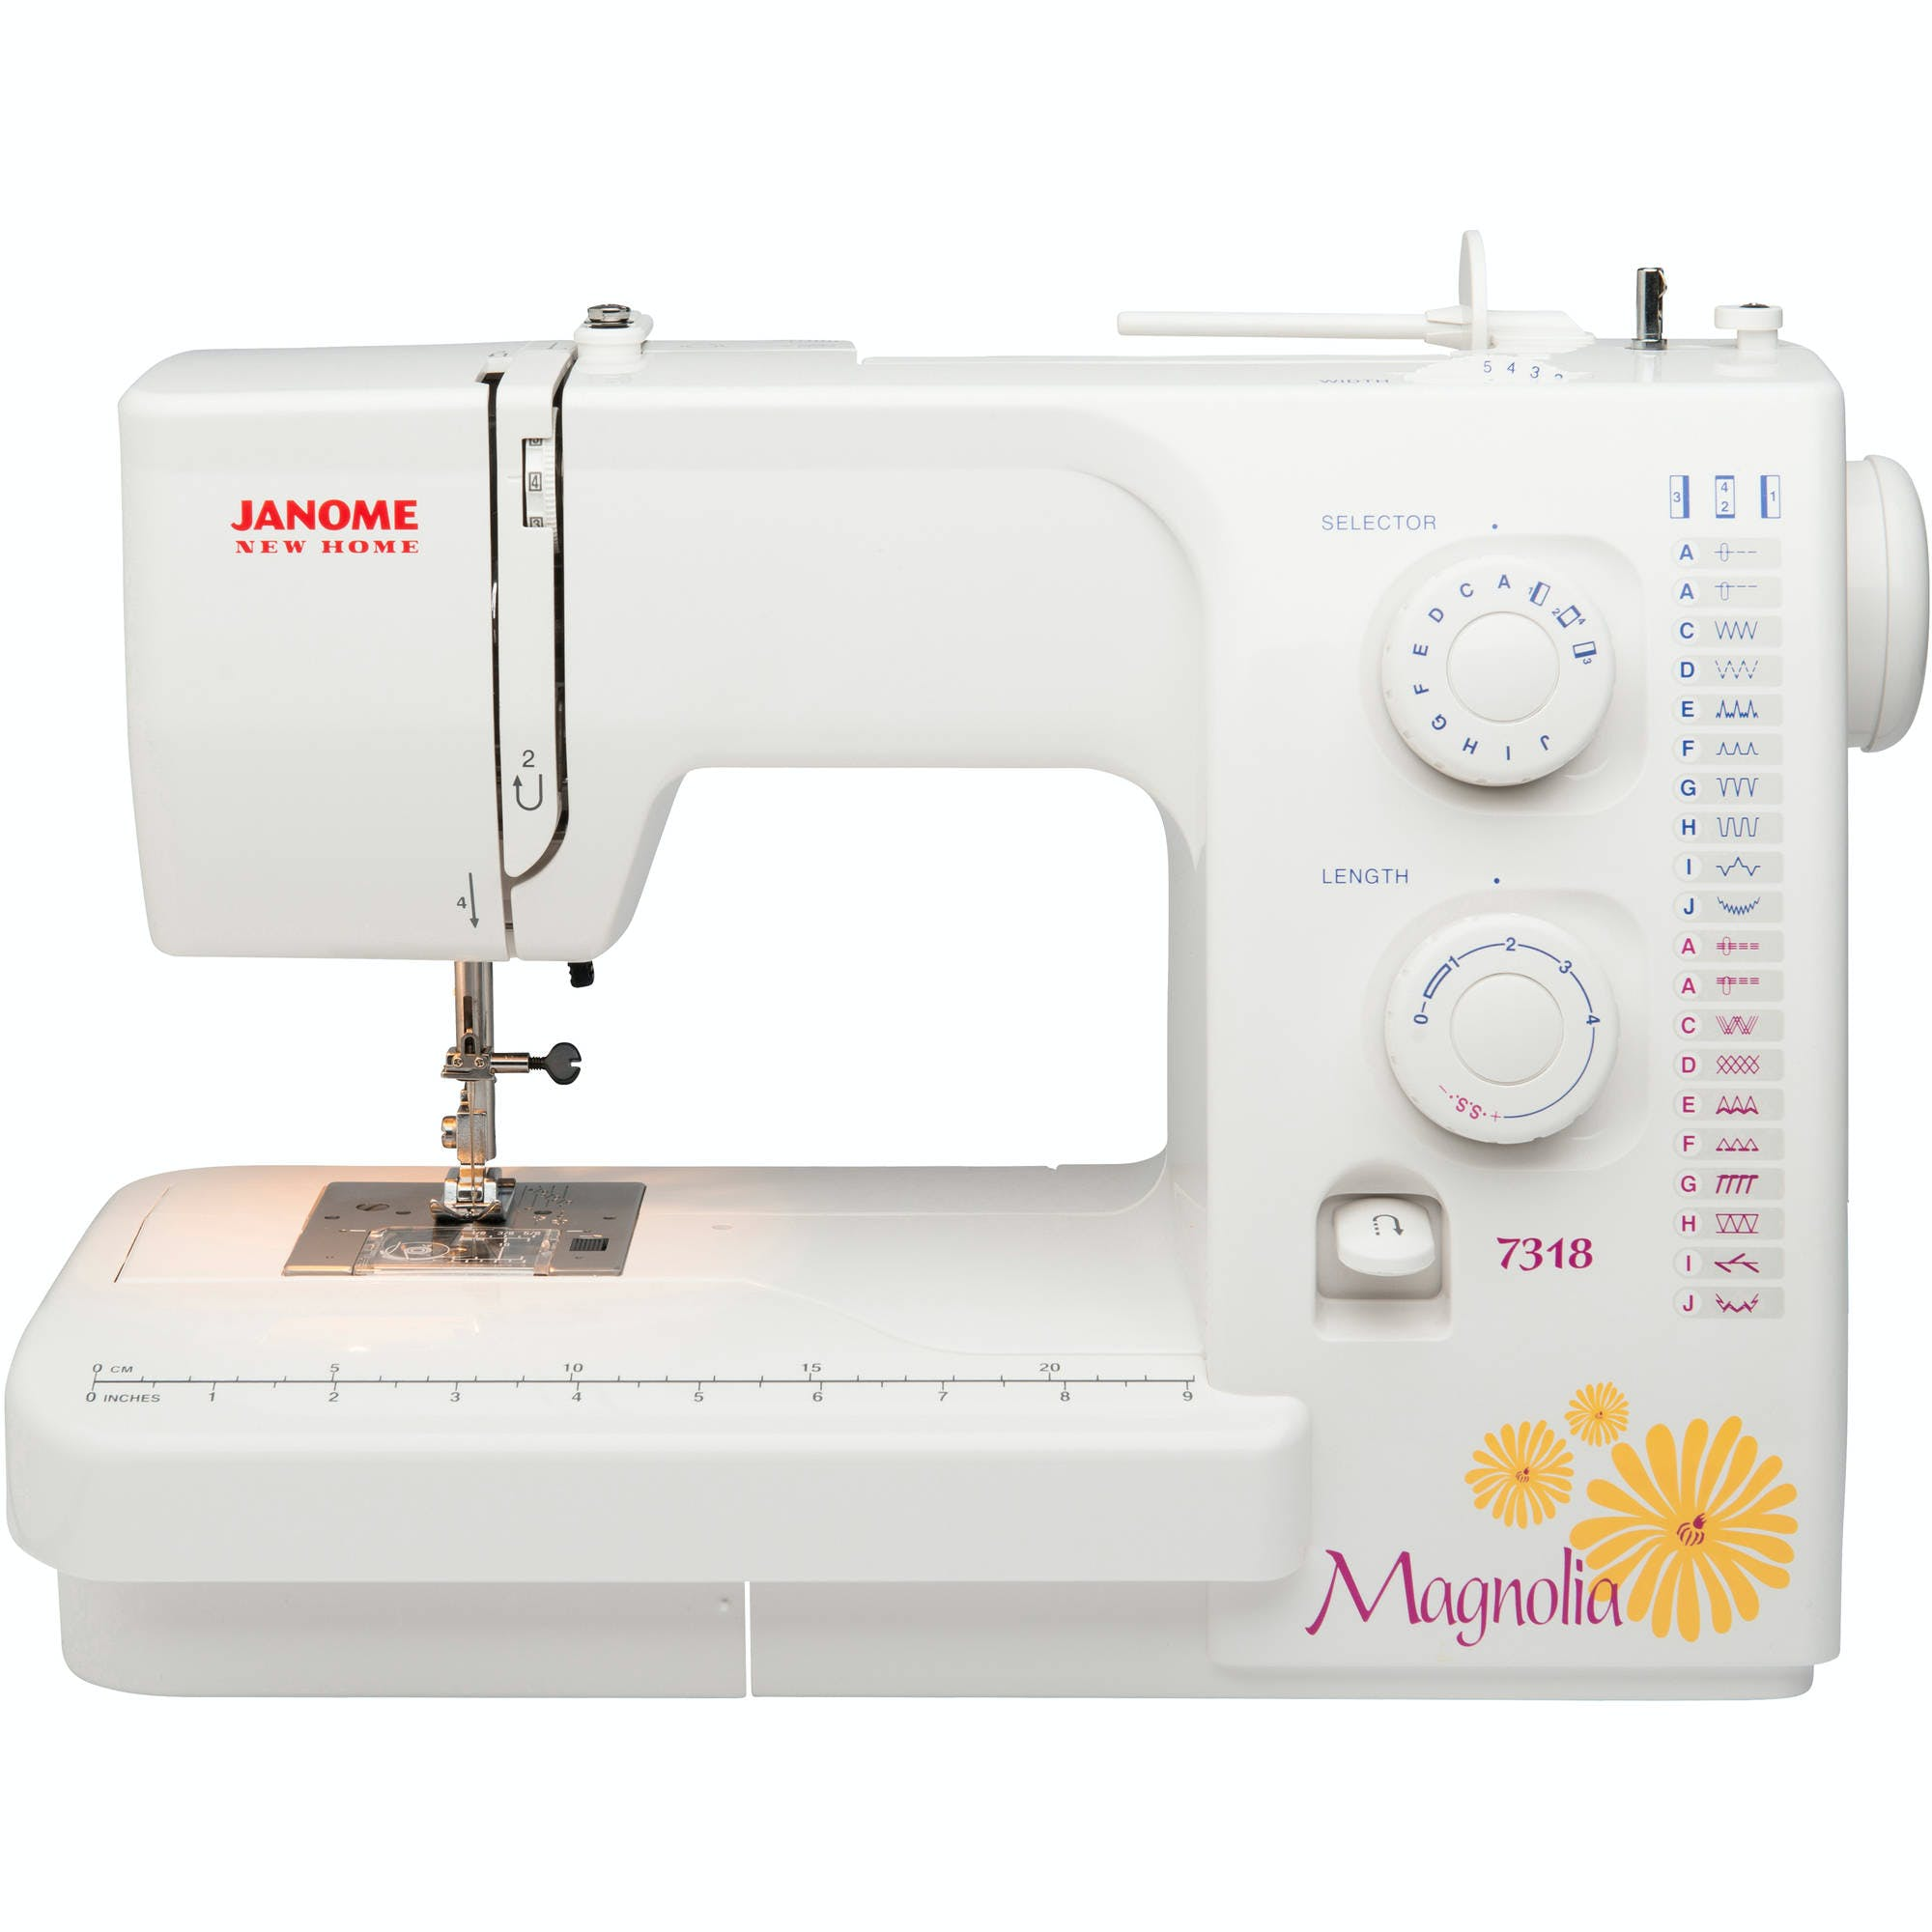 Janome Magnolia 7318 Pocono Sew Vac Bernina 830 Sewing Machine Threading Diagram